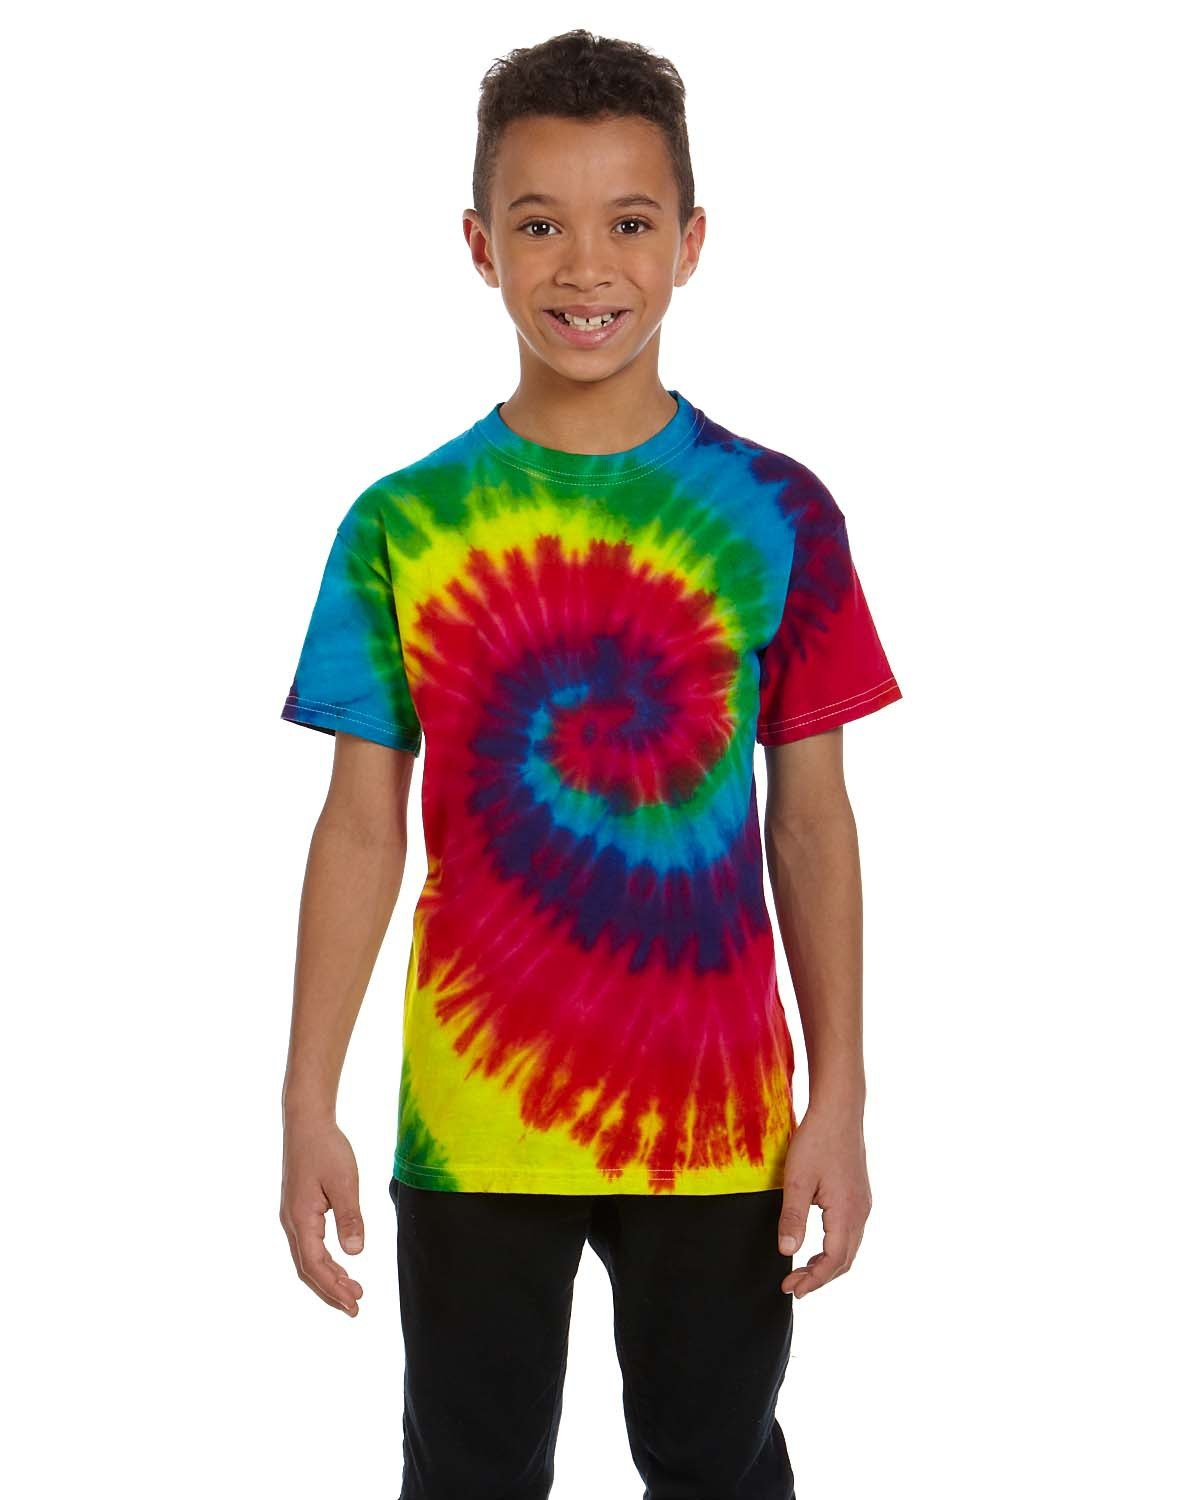 100/% Cotton Youth L kids Youth XS Multi-Color Woodstock Tie Dye T-Shirts